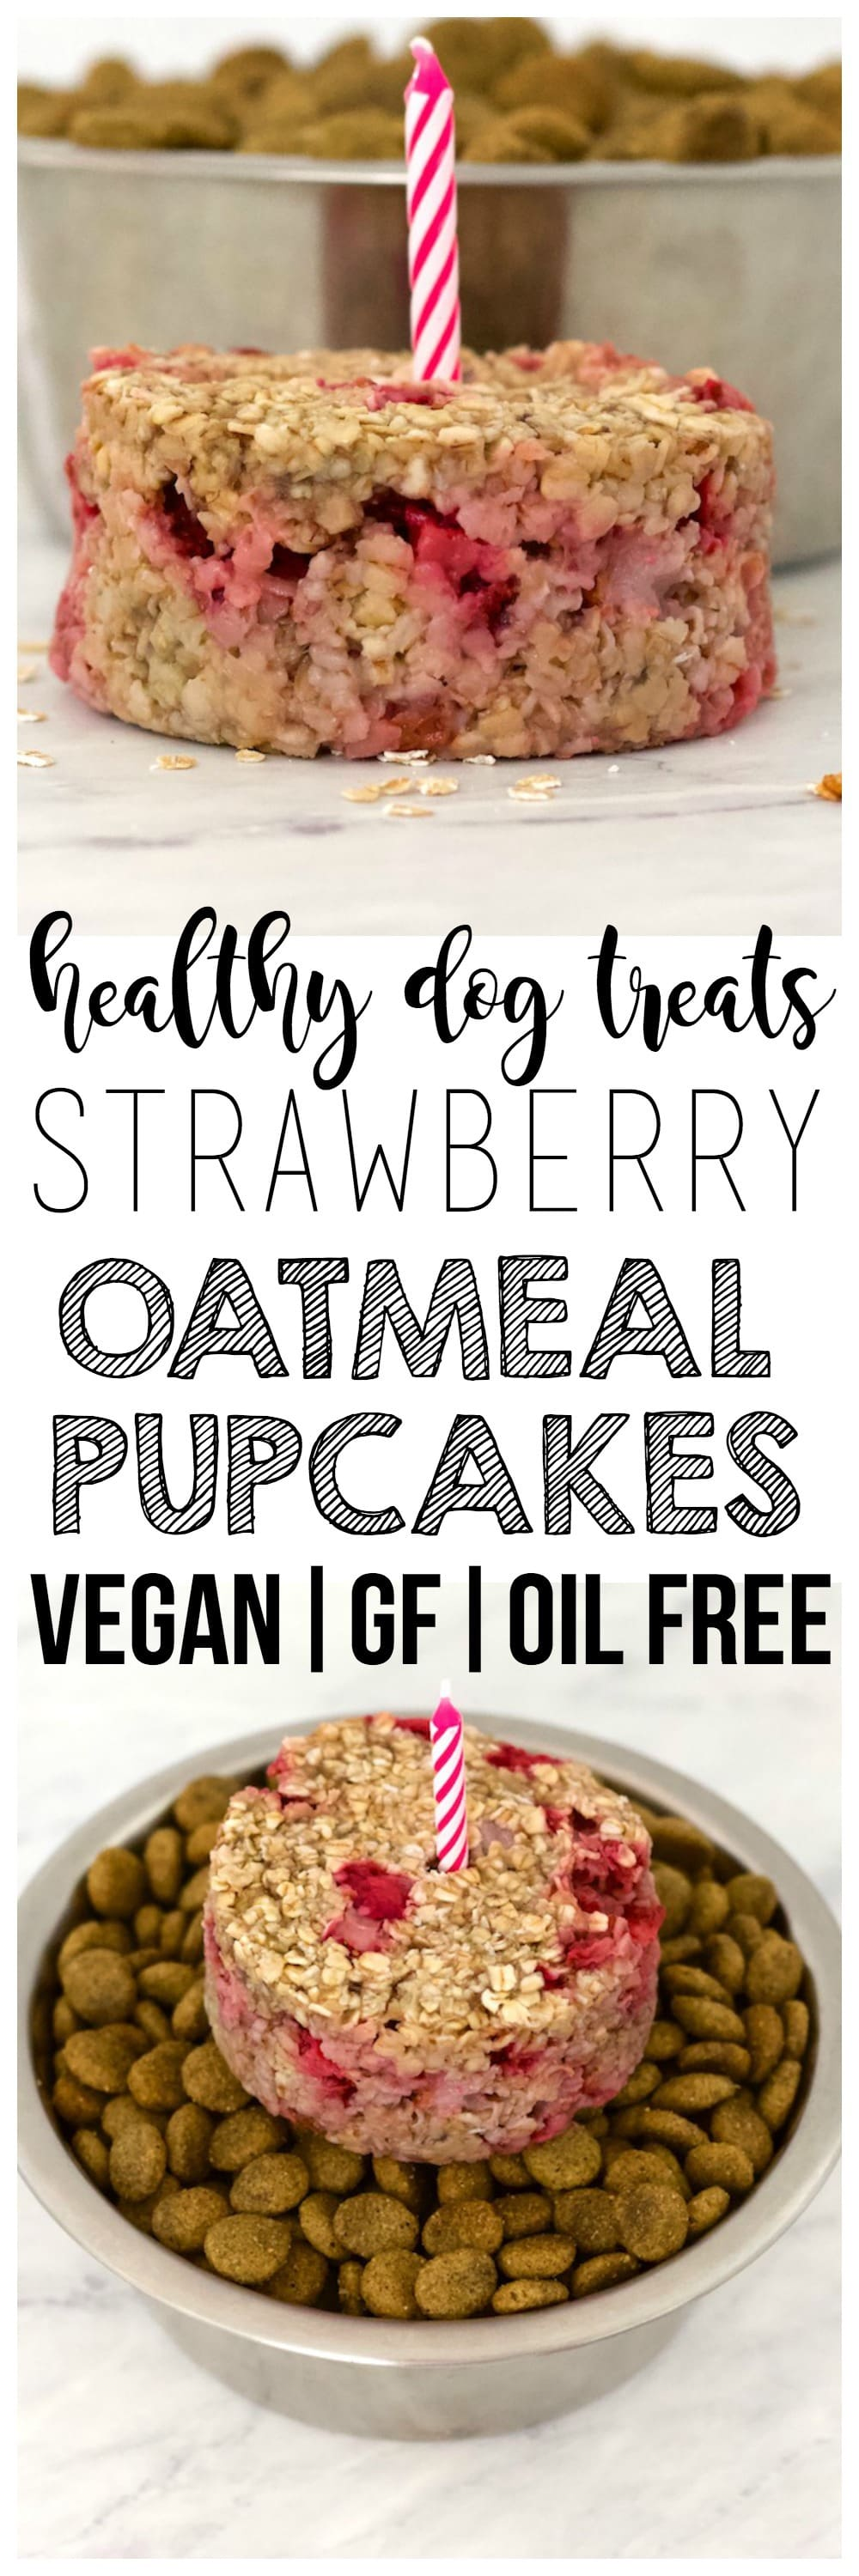 These simple, 4-ingredient Strawberry Banana Oatmeal Pupcakes are the perfect, healthy, homemade dog treat for your sweet fur babies! They are vegan, gluten-free, low-fat, oil-free, and contain no added sugar.